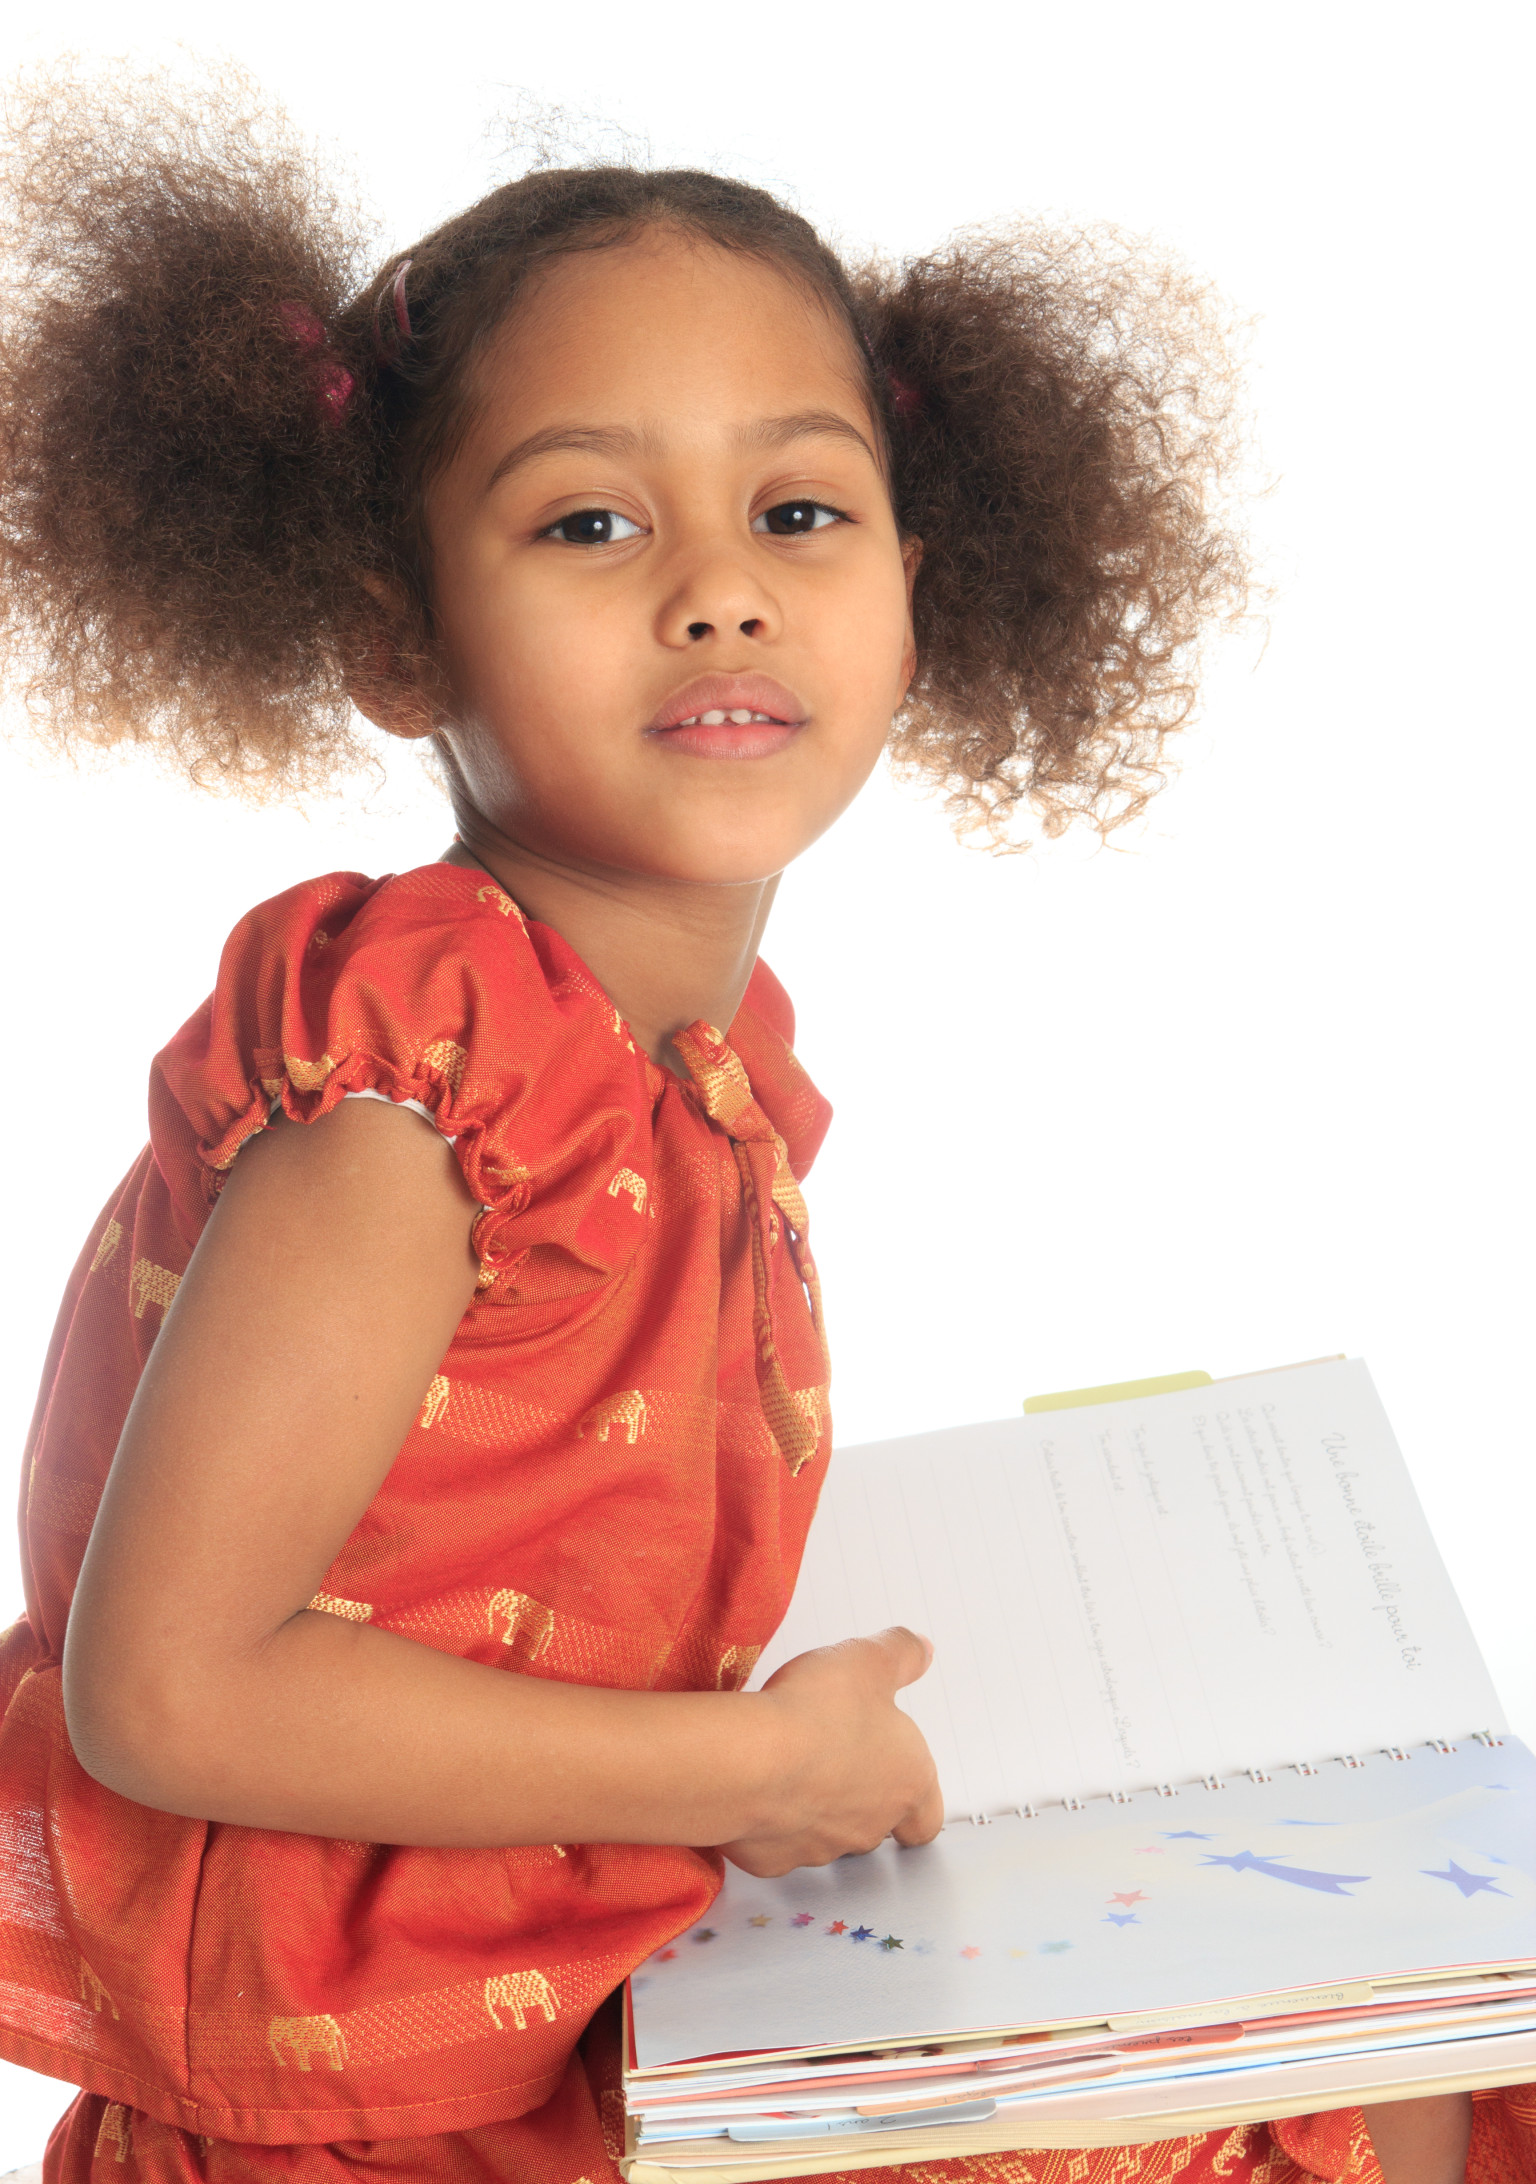 Black Girls Killing It: Ohio School Apologizes After Attempting To Ban 'Afro-Puffs